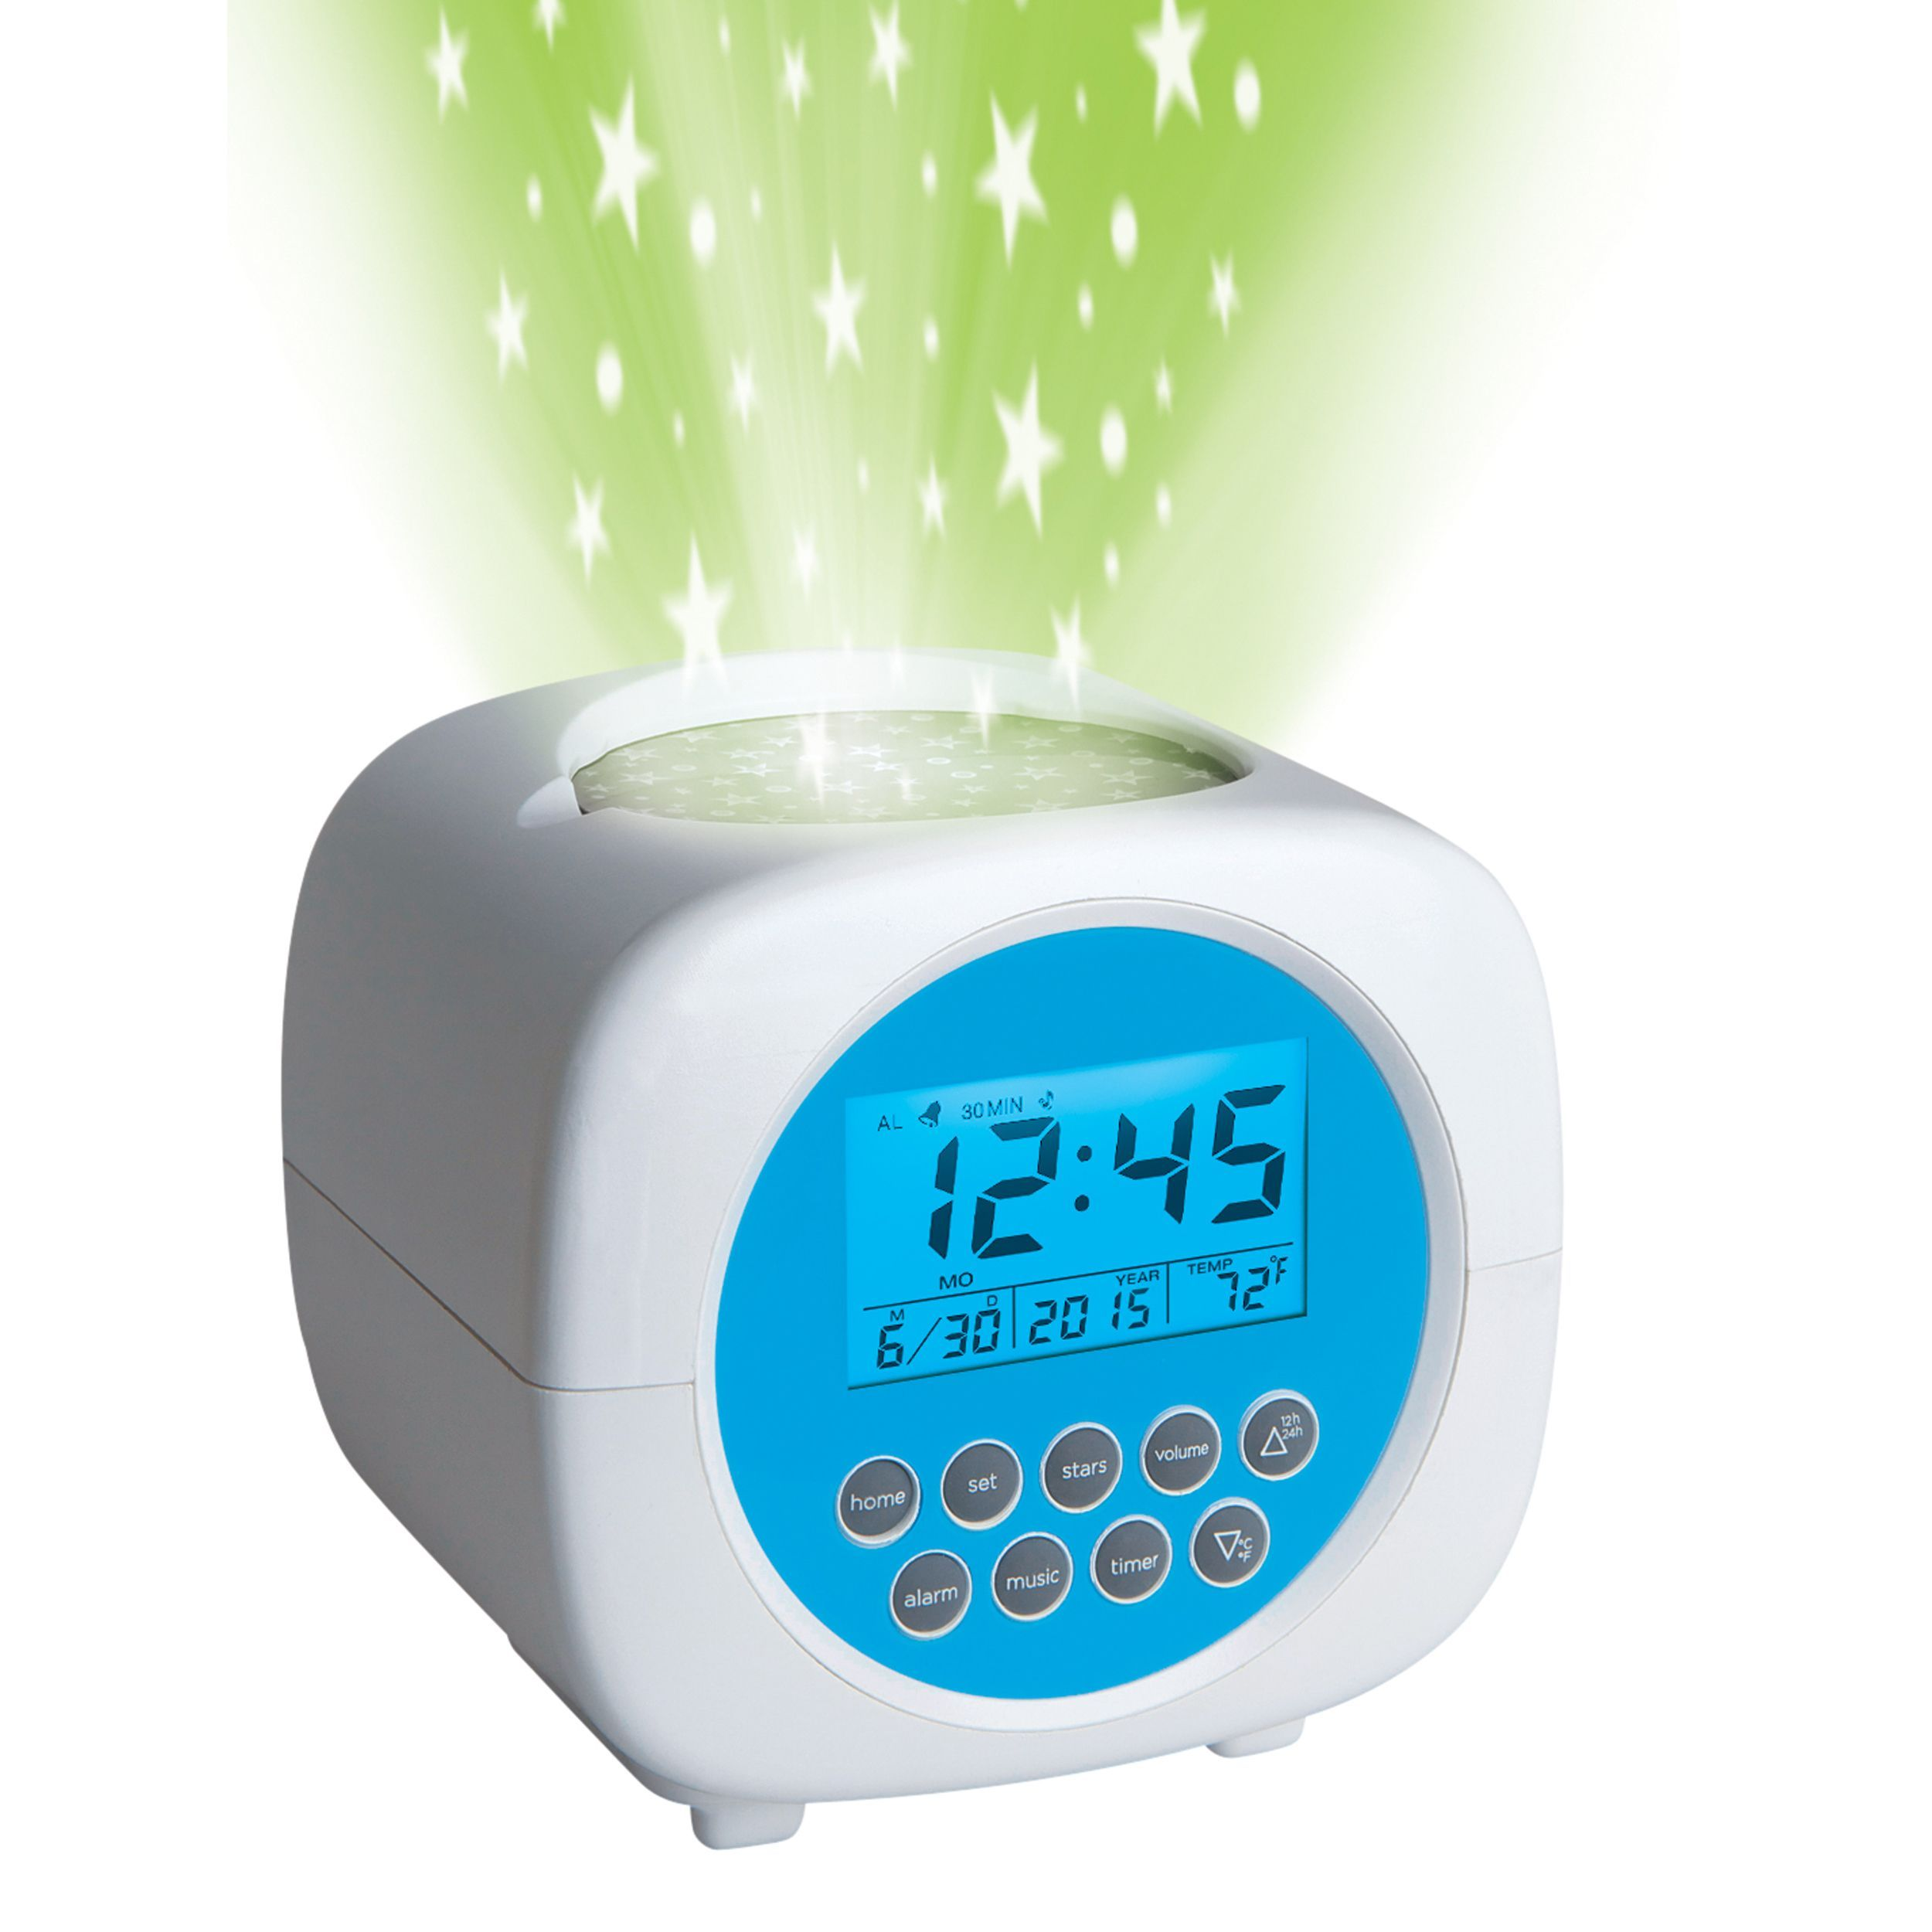 Light Up Your Room With The Disery Kids Sound Machine Projection Alarm Clock This